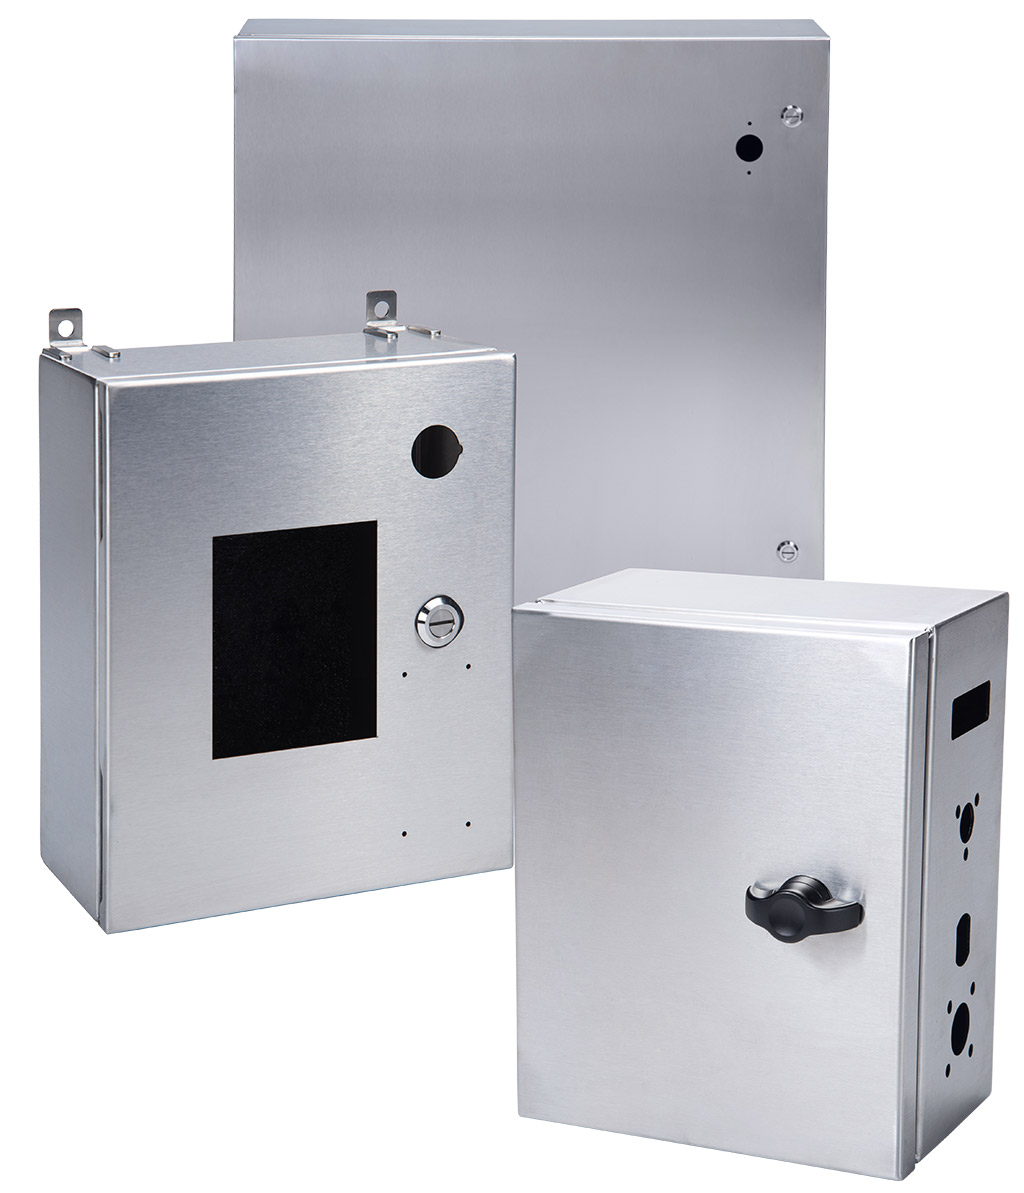 nema 4x stainless steel electrical enclosures